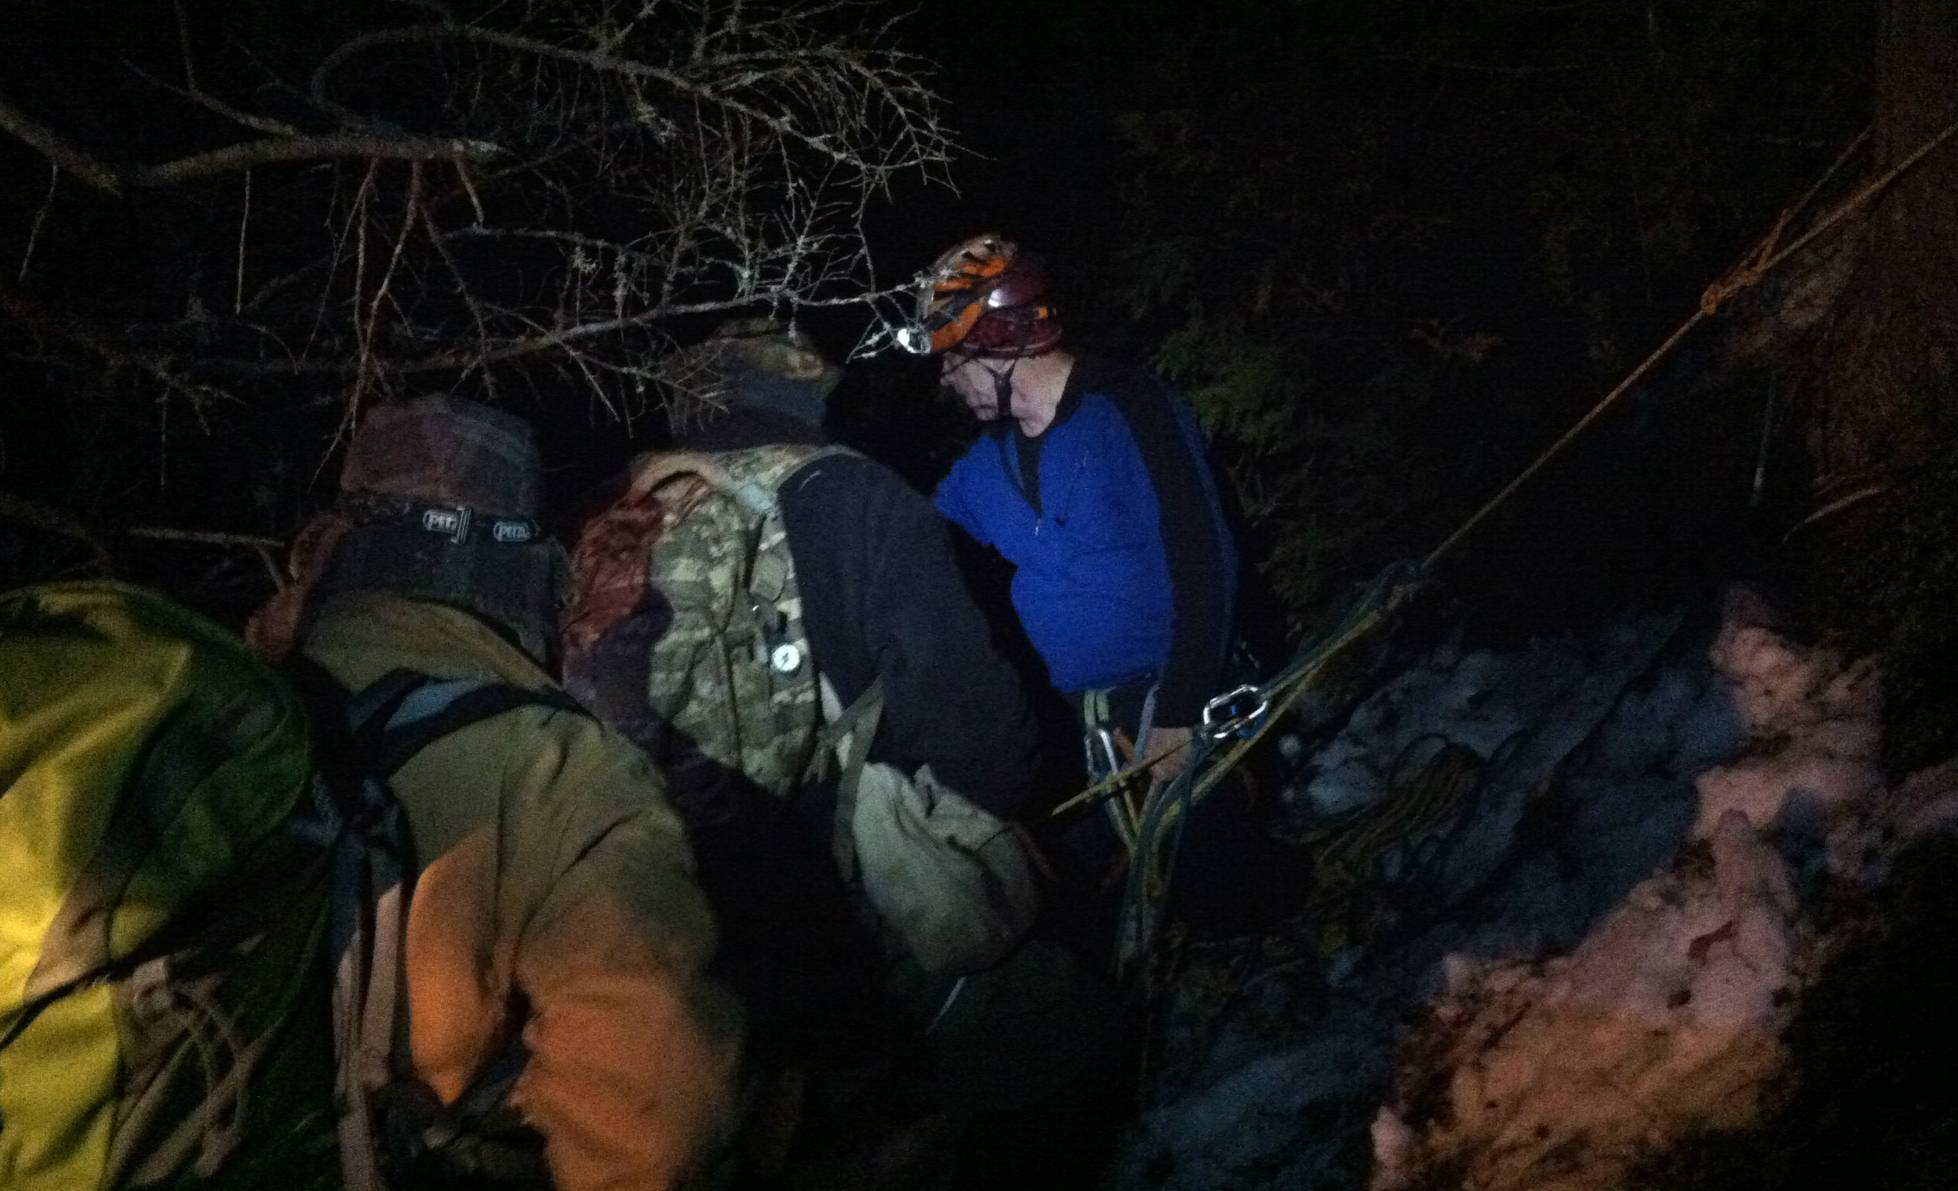 This photo provided by the Maine Warden Service, shows four professional climbers lowering a group of three Boy Scouts and two of their adult leaders down from the side of Black Cap Mountain in Eddington, Maine, early Sunday, Feb. 23, 2014.